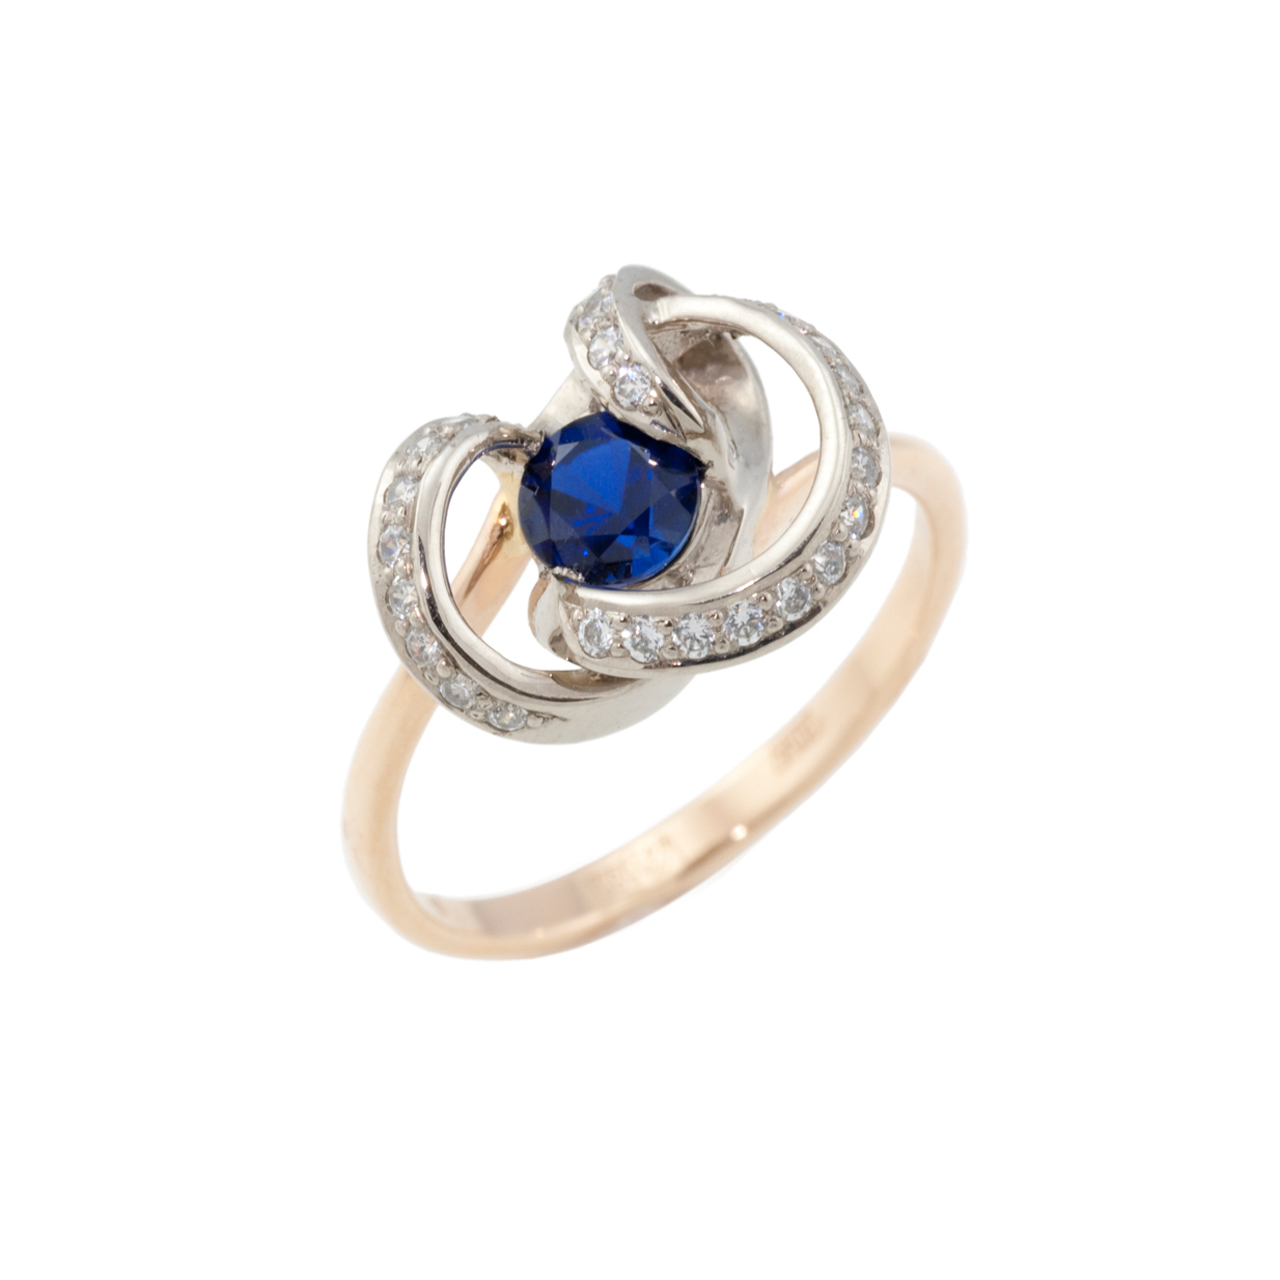 Two Tone Gold Ring with Lab-Created Sapphire